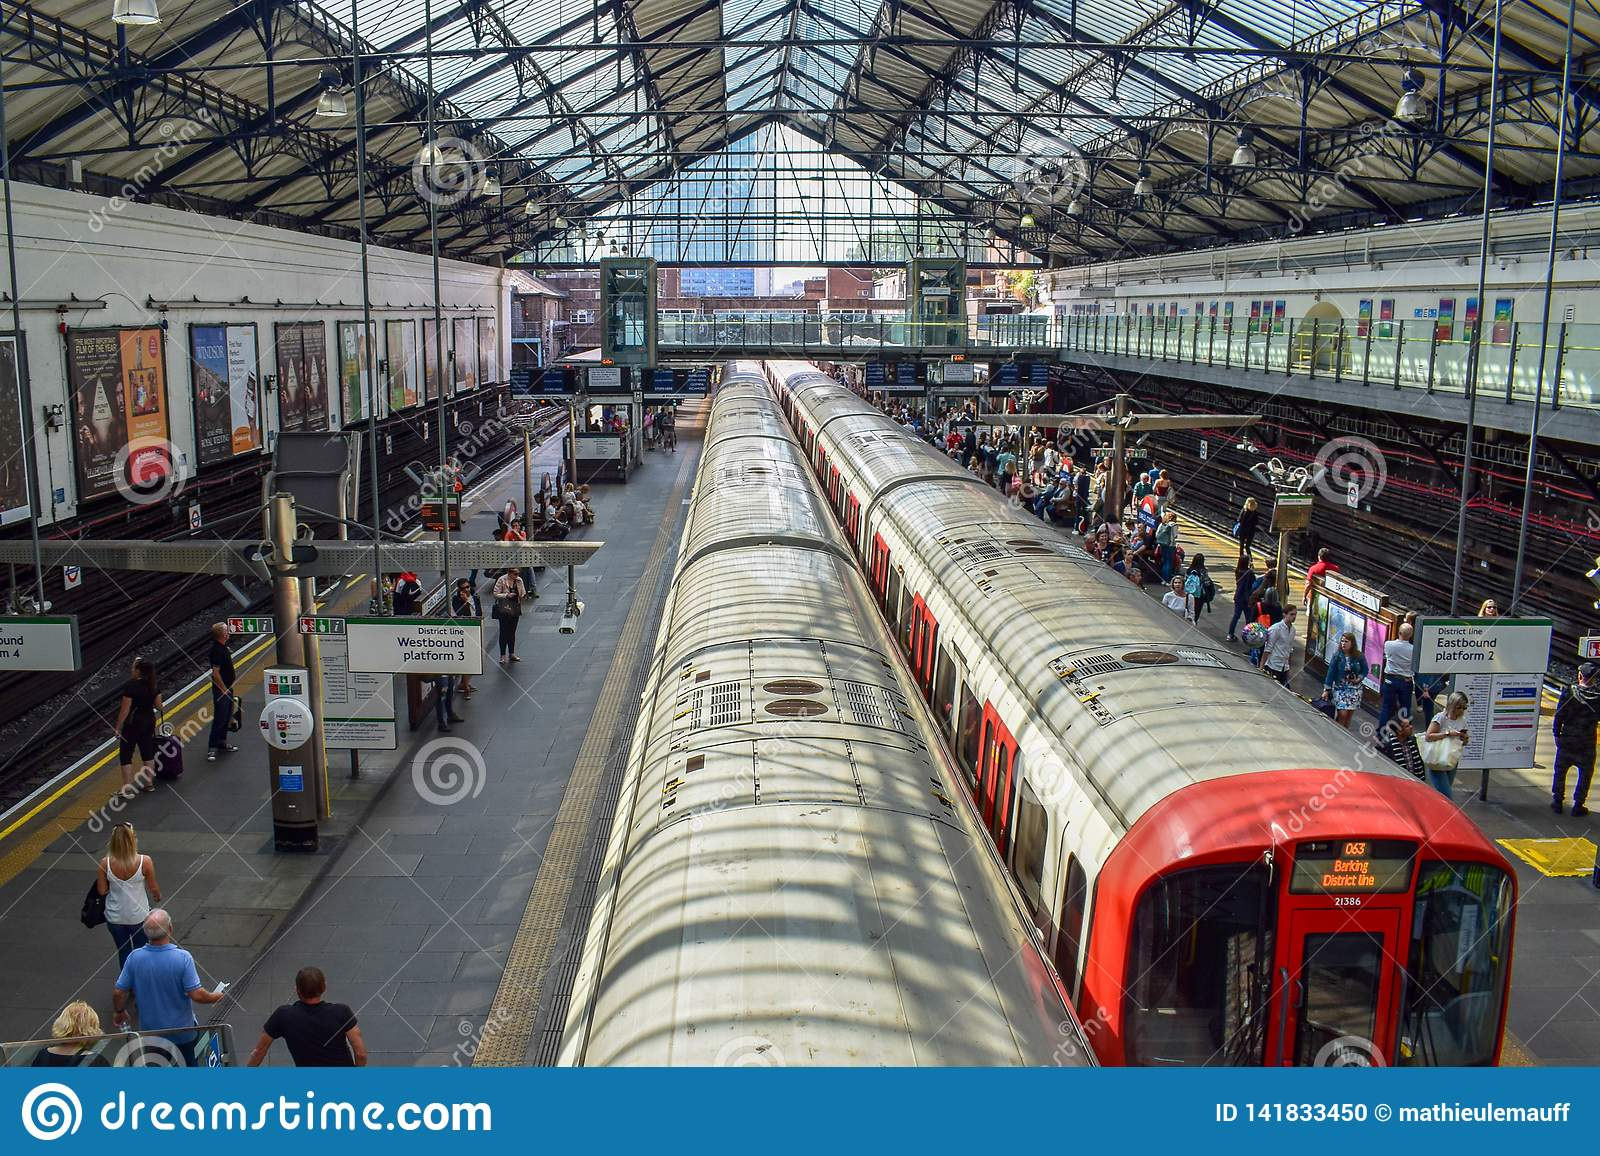 Aerial View of Train Departing from an Underground Tube Station in London